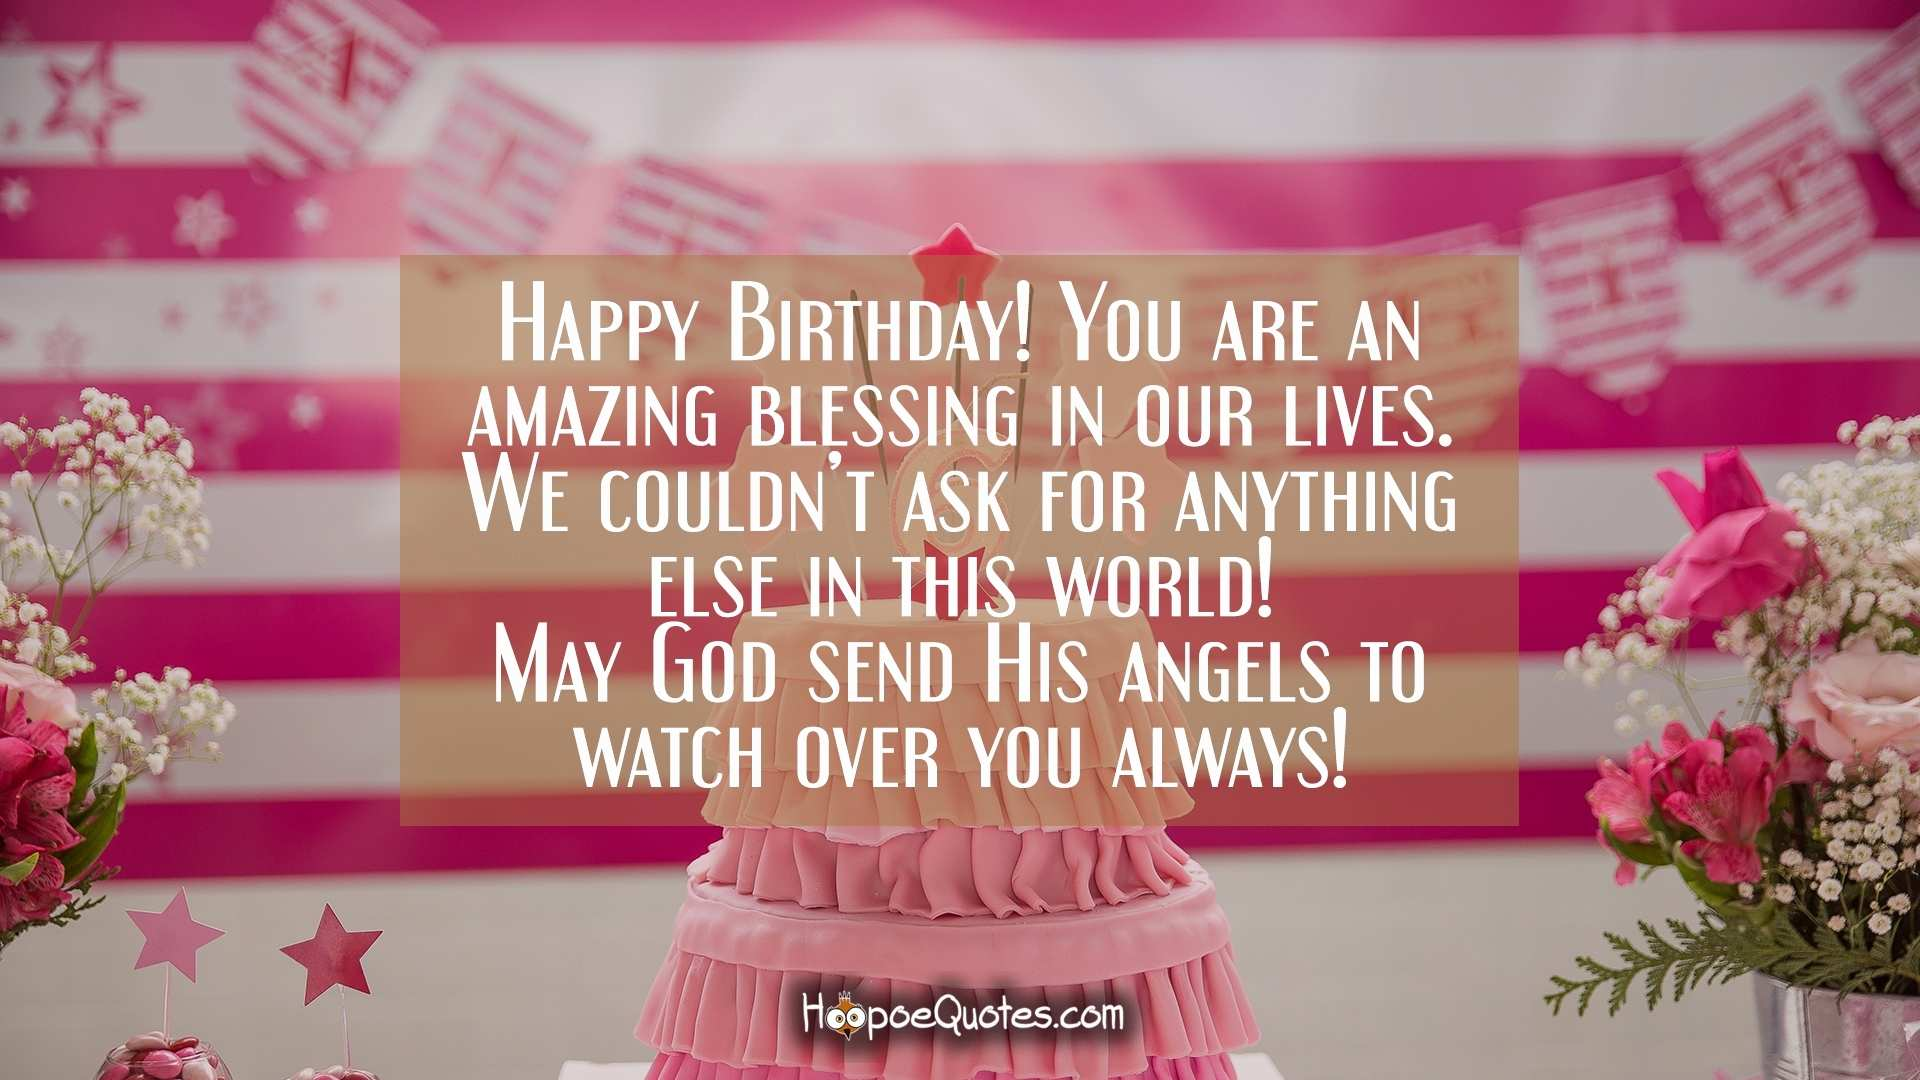 happy birthday message to a woman of god ; birthday-wishes-for-a-little-girl-beautiful-20-christian-birthday-wishes-religious-birthday-messages-of-birthday-wishes-for-a-little-girl